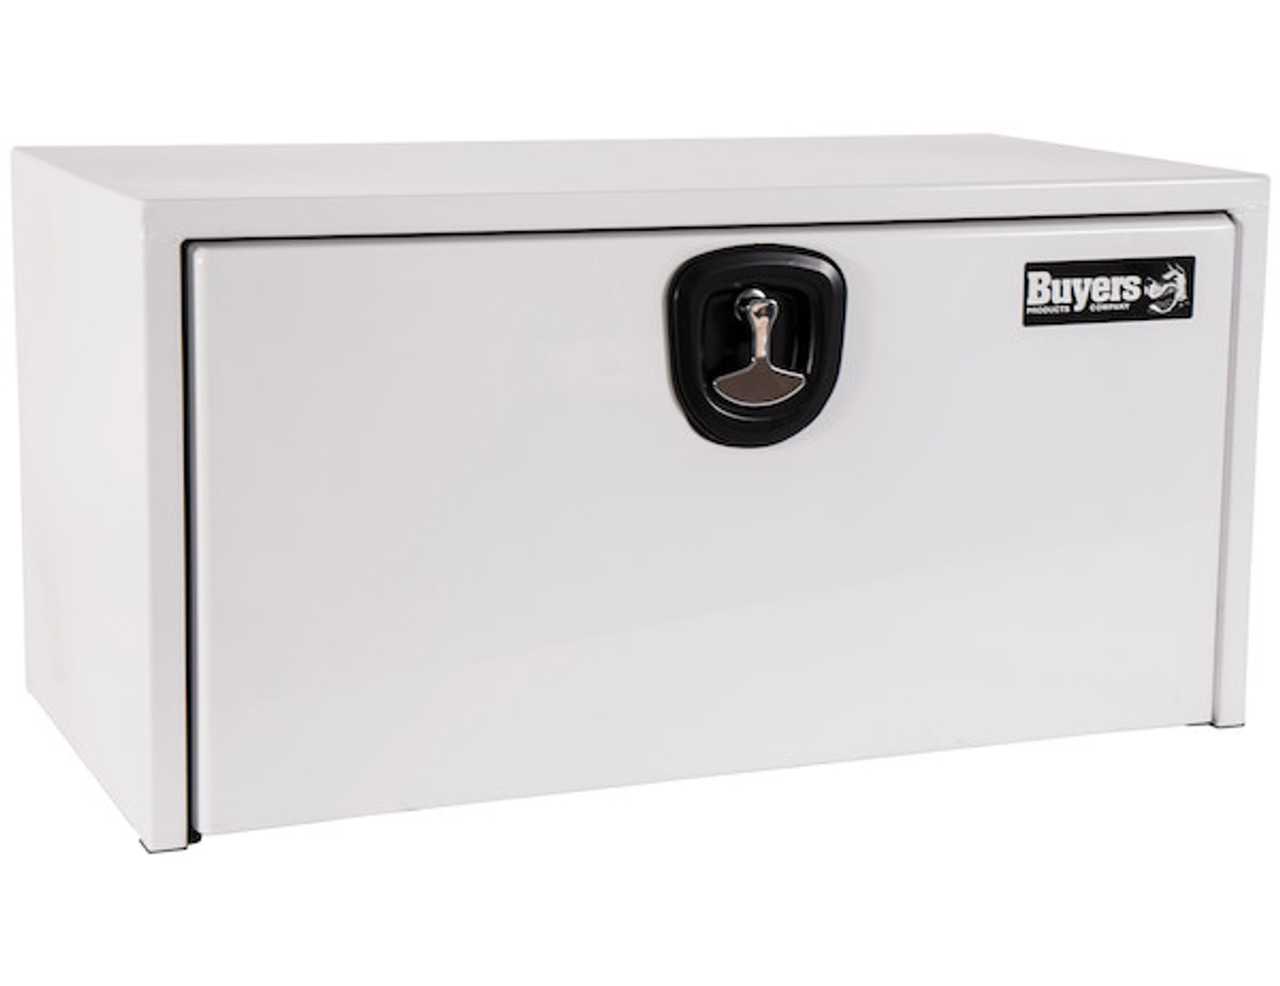 """1734405 BUYERS PRODUCTS WHITE STEEL UNDERBODY TRUCK TOOLBOX WITH 3-POINT LATCH 24""""Hx24""""Dx36""""W"""